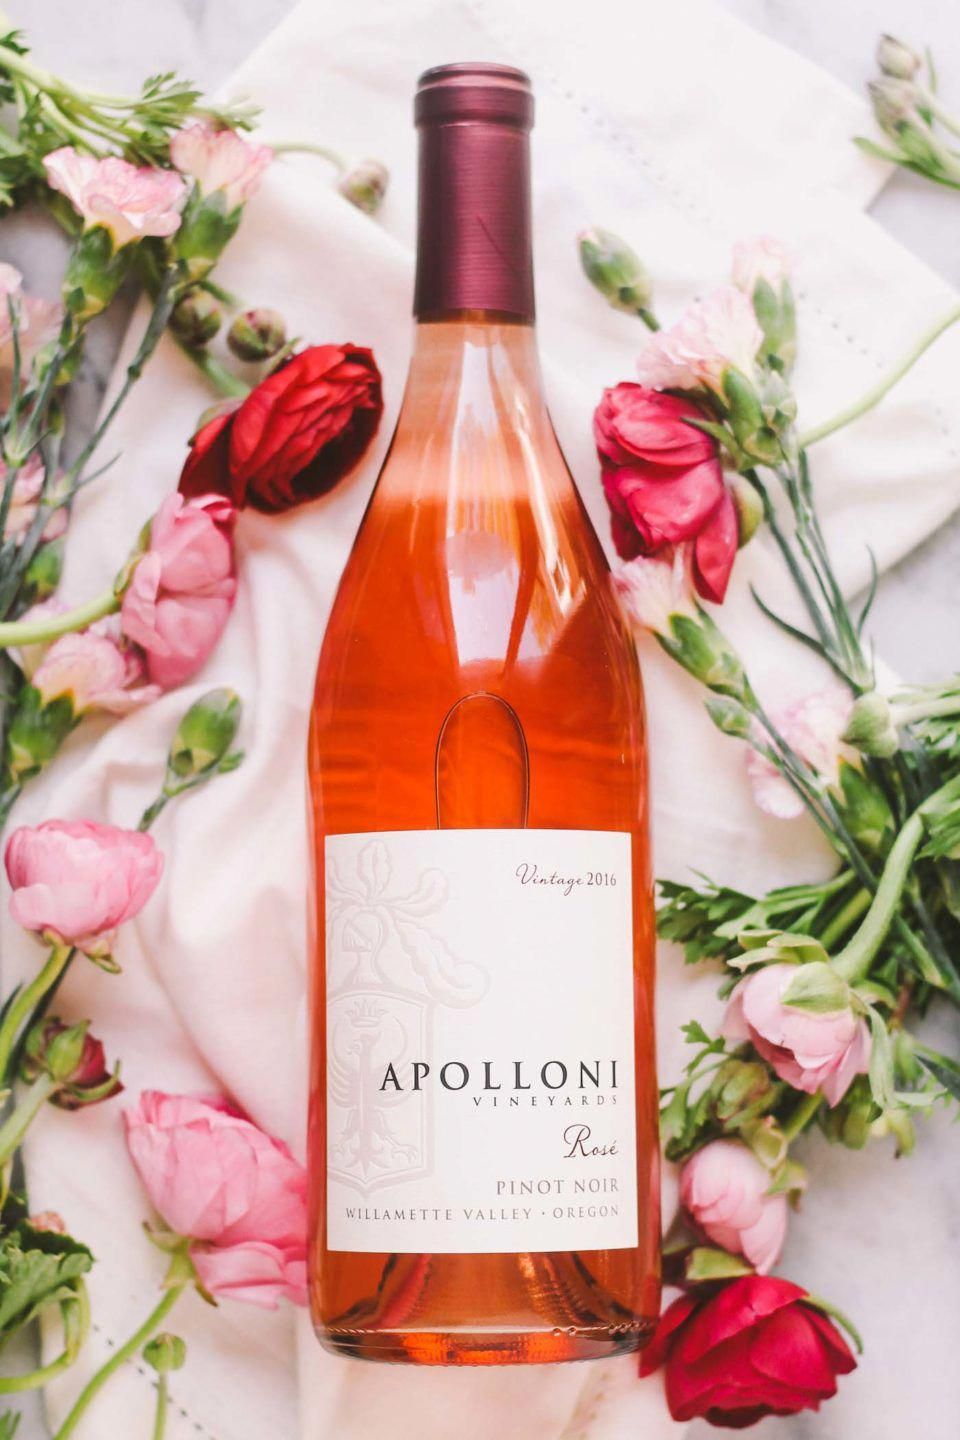 Rose 101 The Ultimate Guide To Pick The Perfect Rose Plays Well With Butter Wine Bottle Wine Guide Wine Drinks